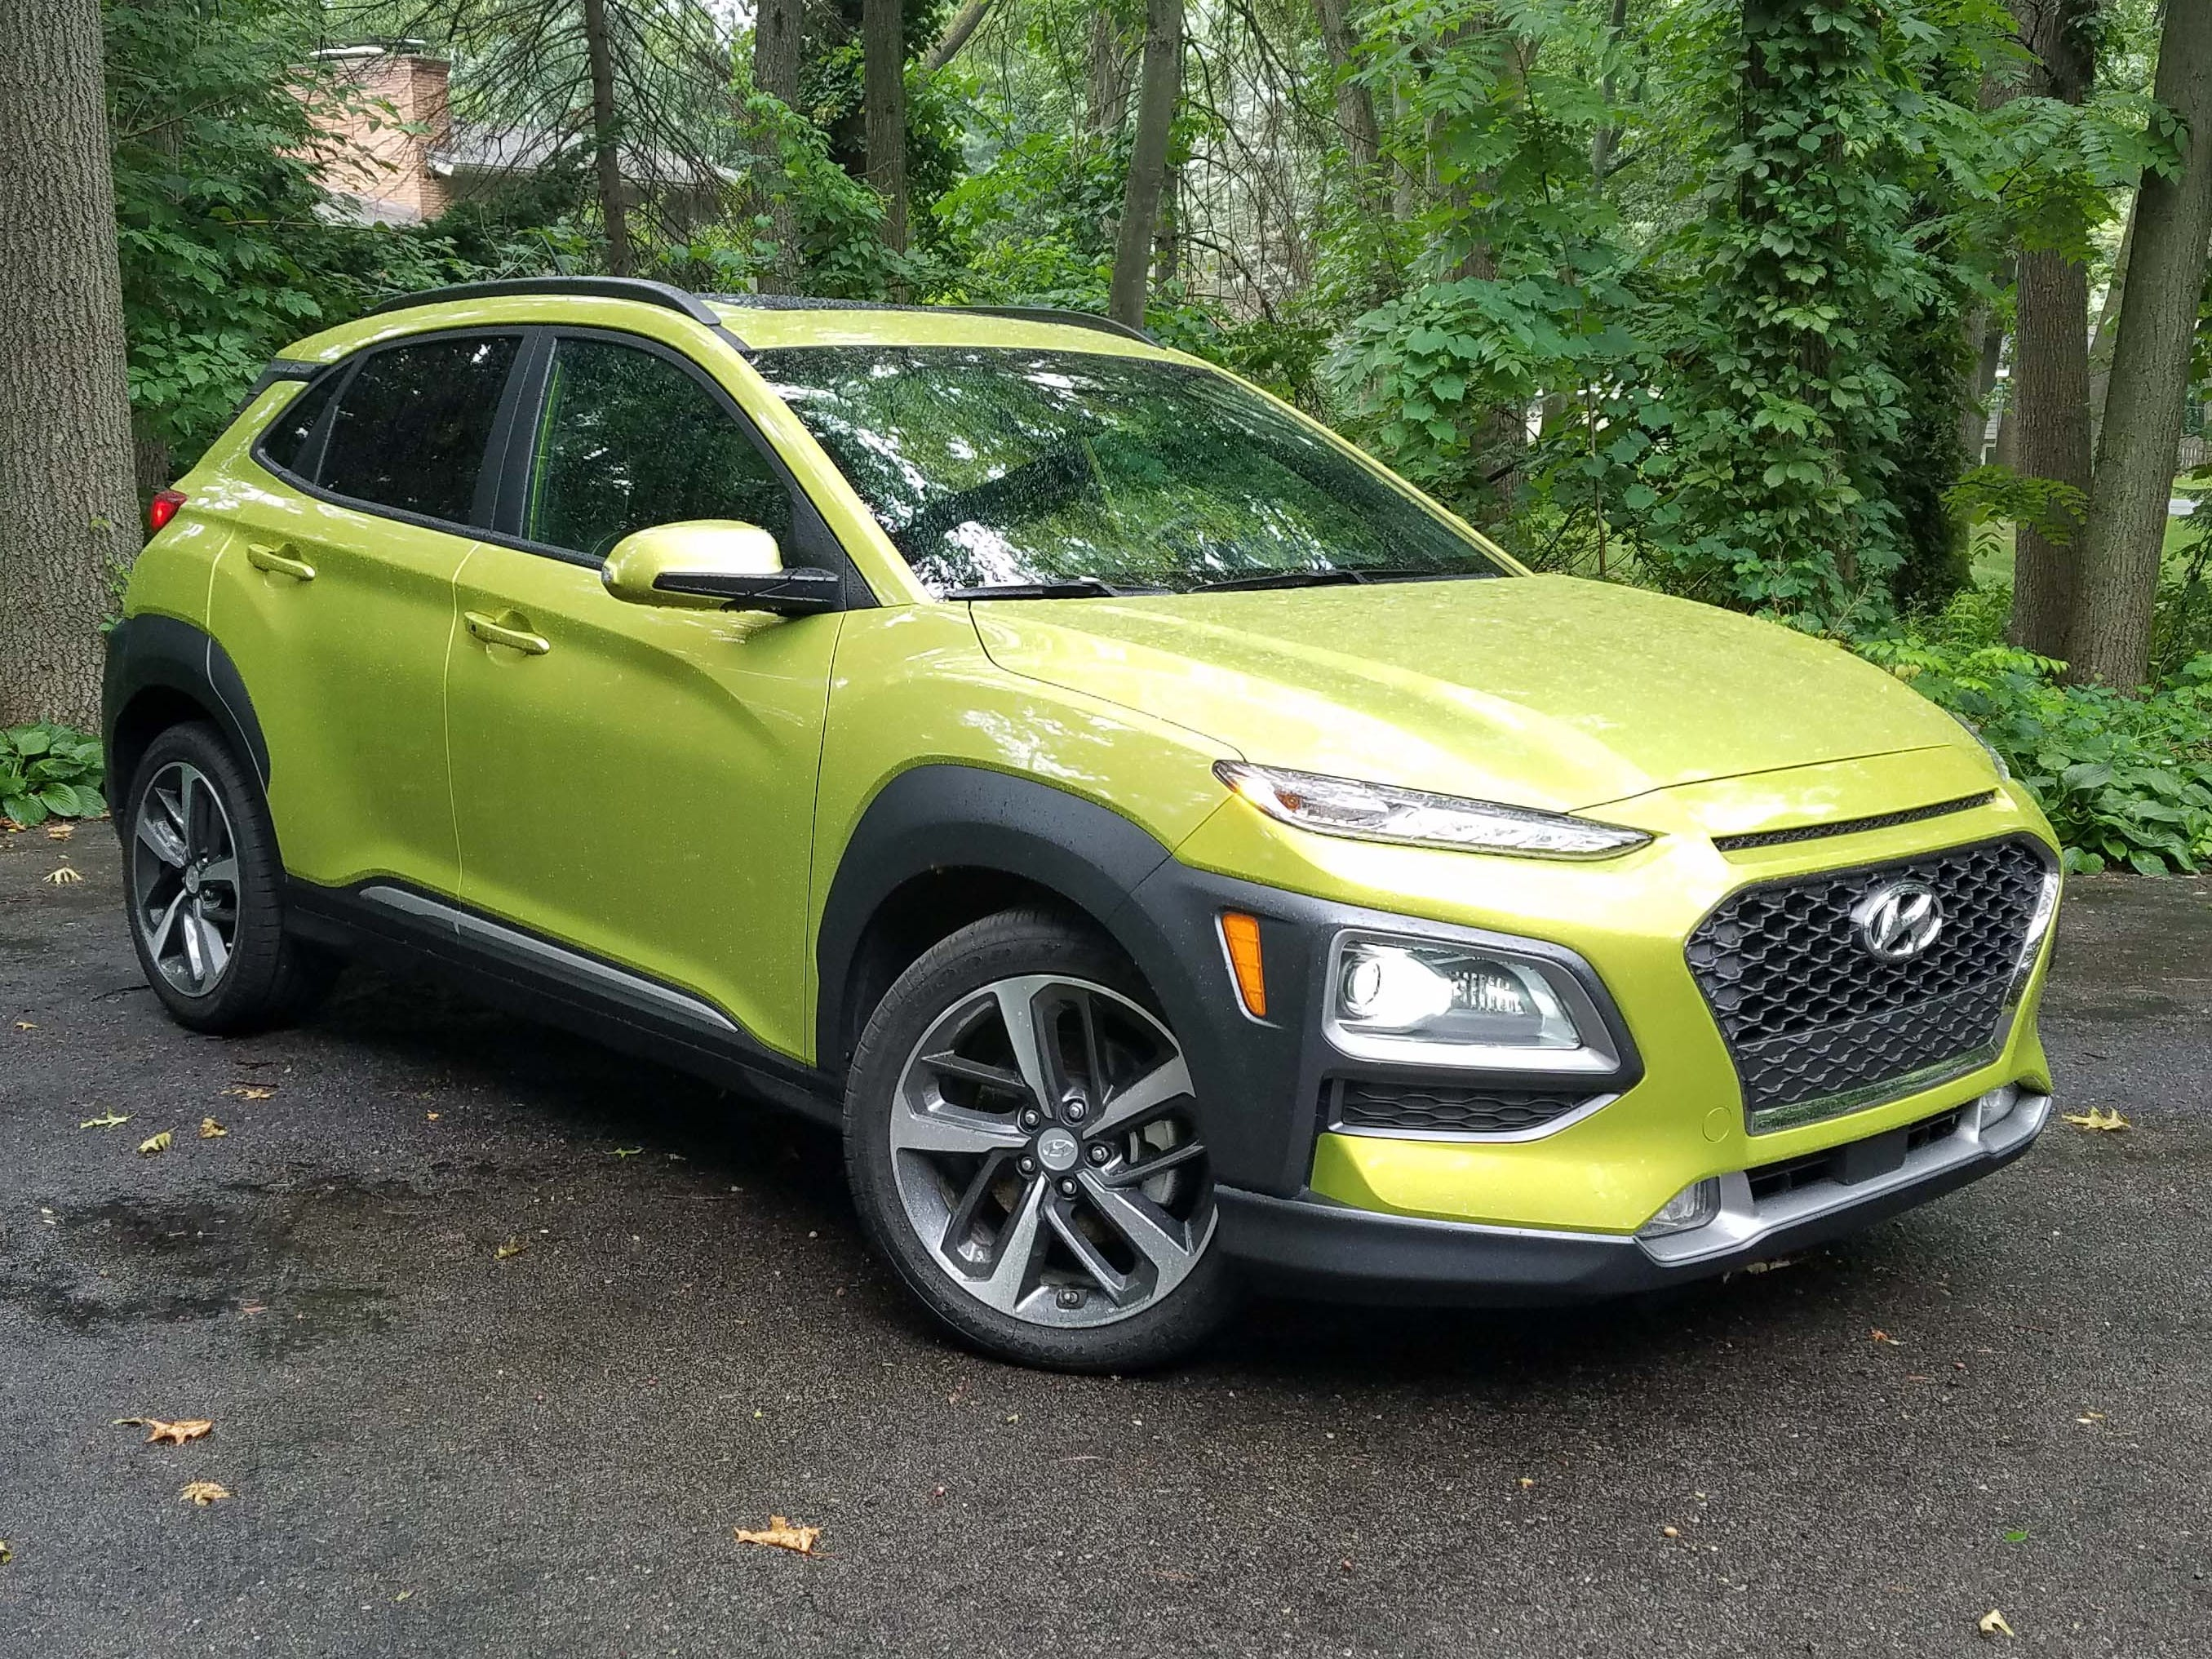 The Utility of the Year is the Hyundai Kona, offered with the same pair of engines that come with the sporty Hyundai Veloster sports coupe: a 143-horse, 2.0-liter 4-banger and a 175-horse, 193-torque, 1.6-liter turbo.